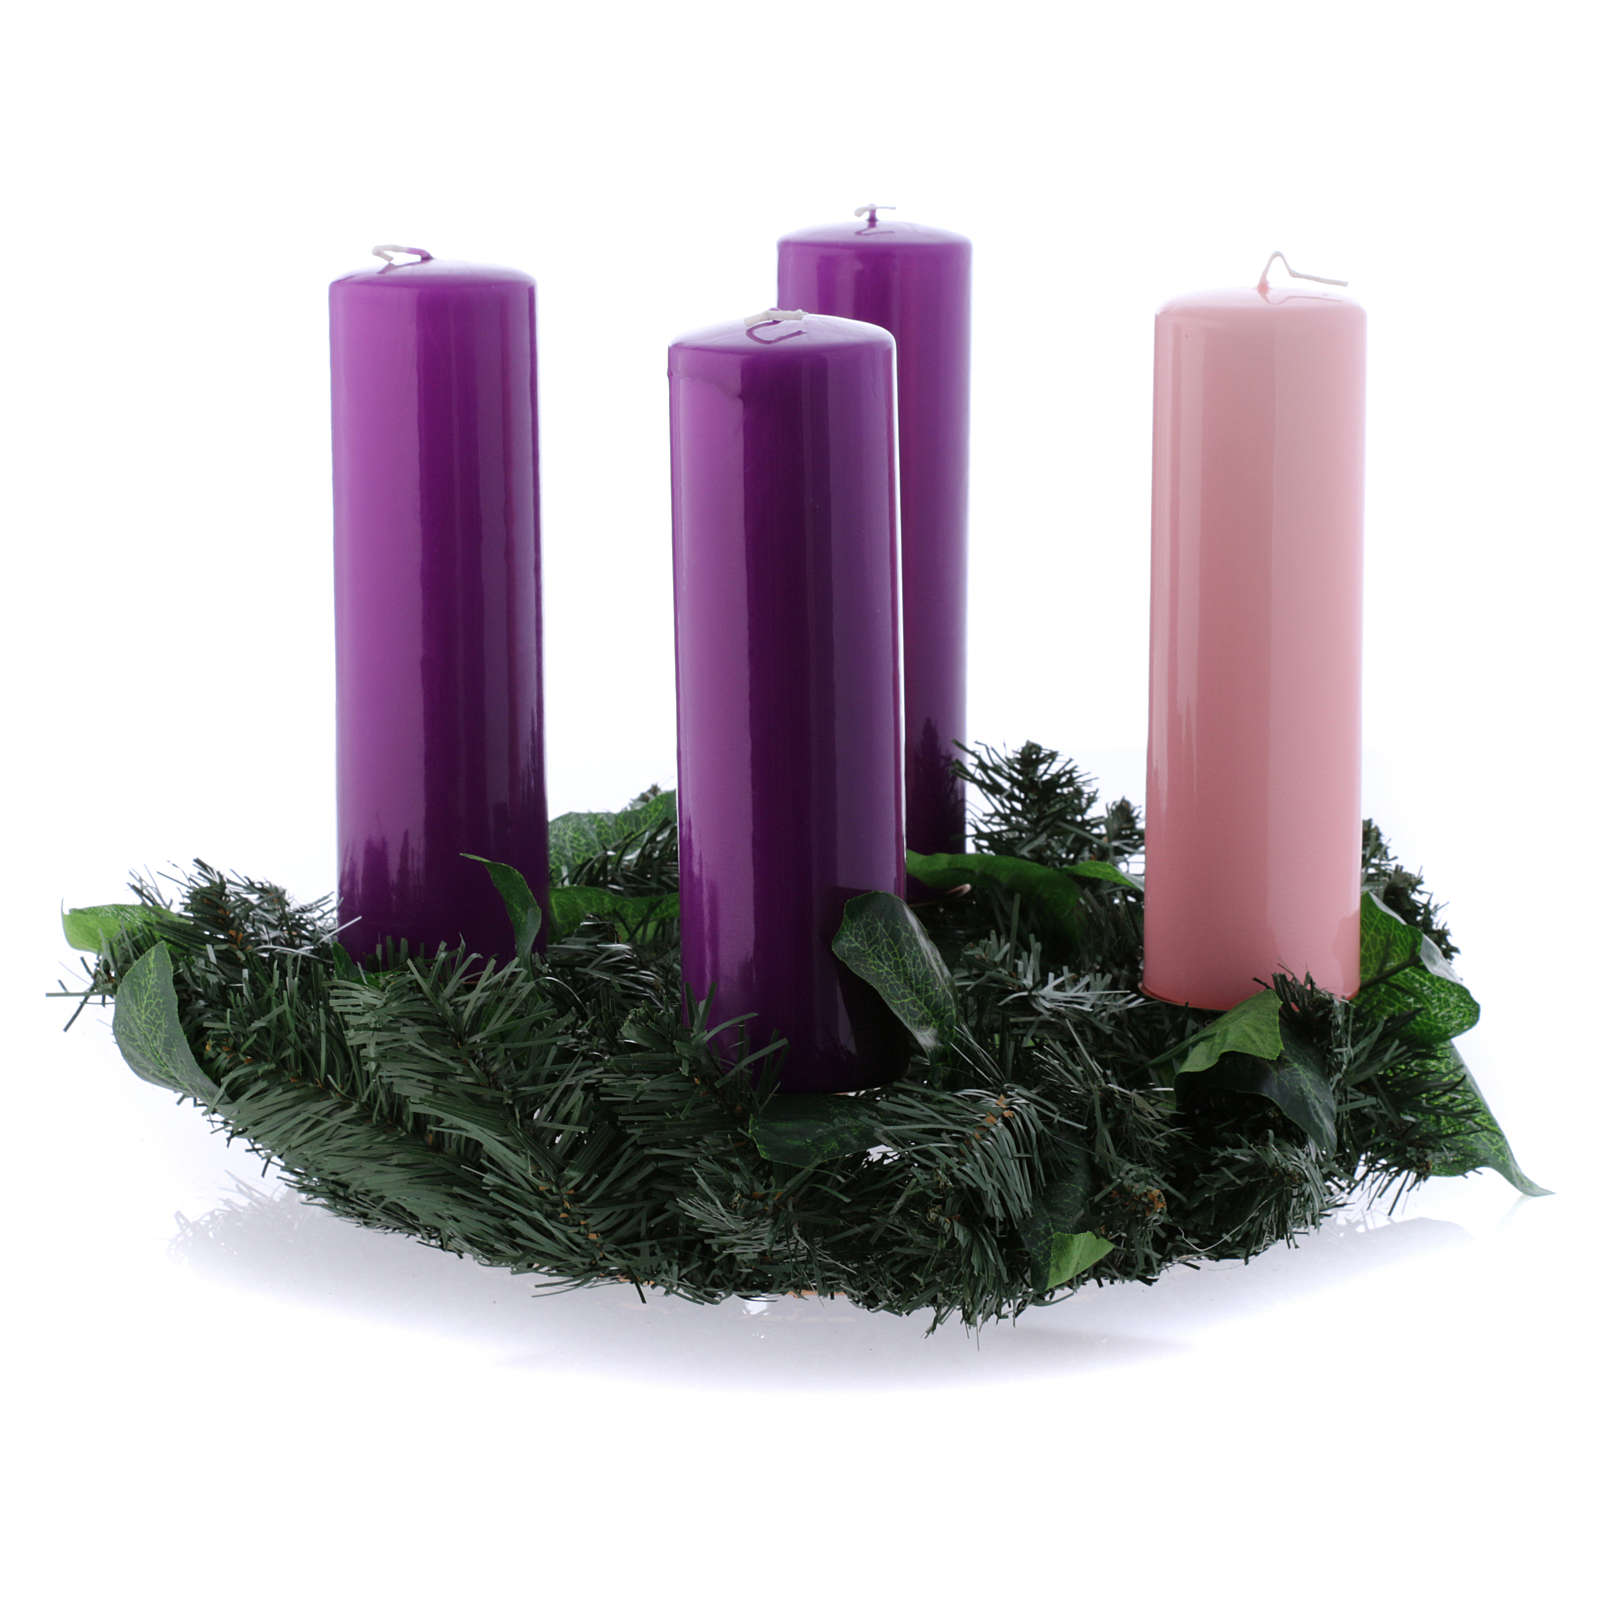 Liturgical Advent kit: wreath and candles 20x6 cm 3